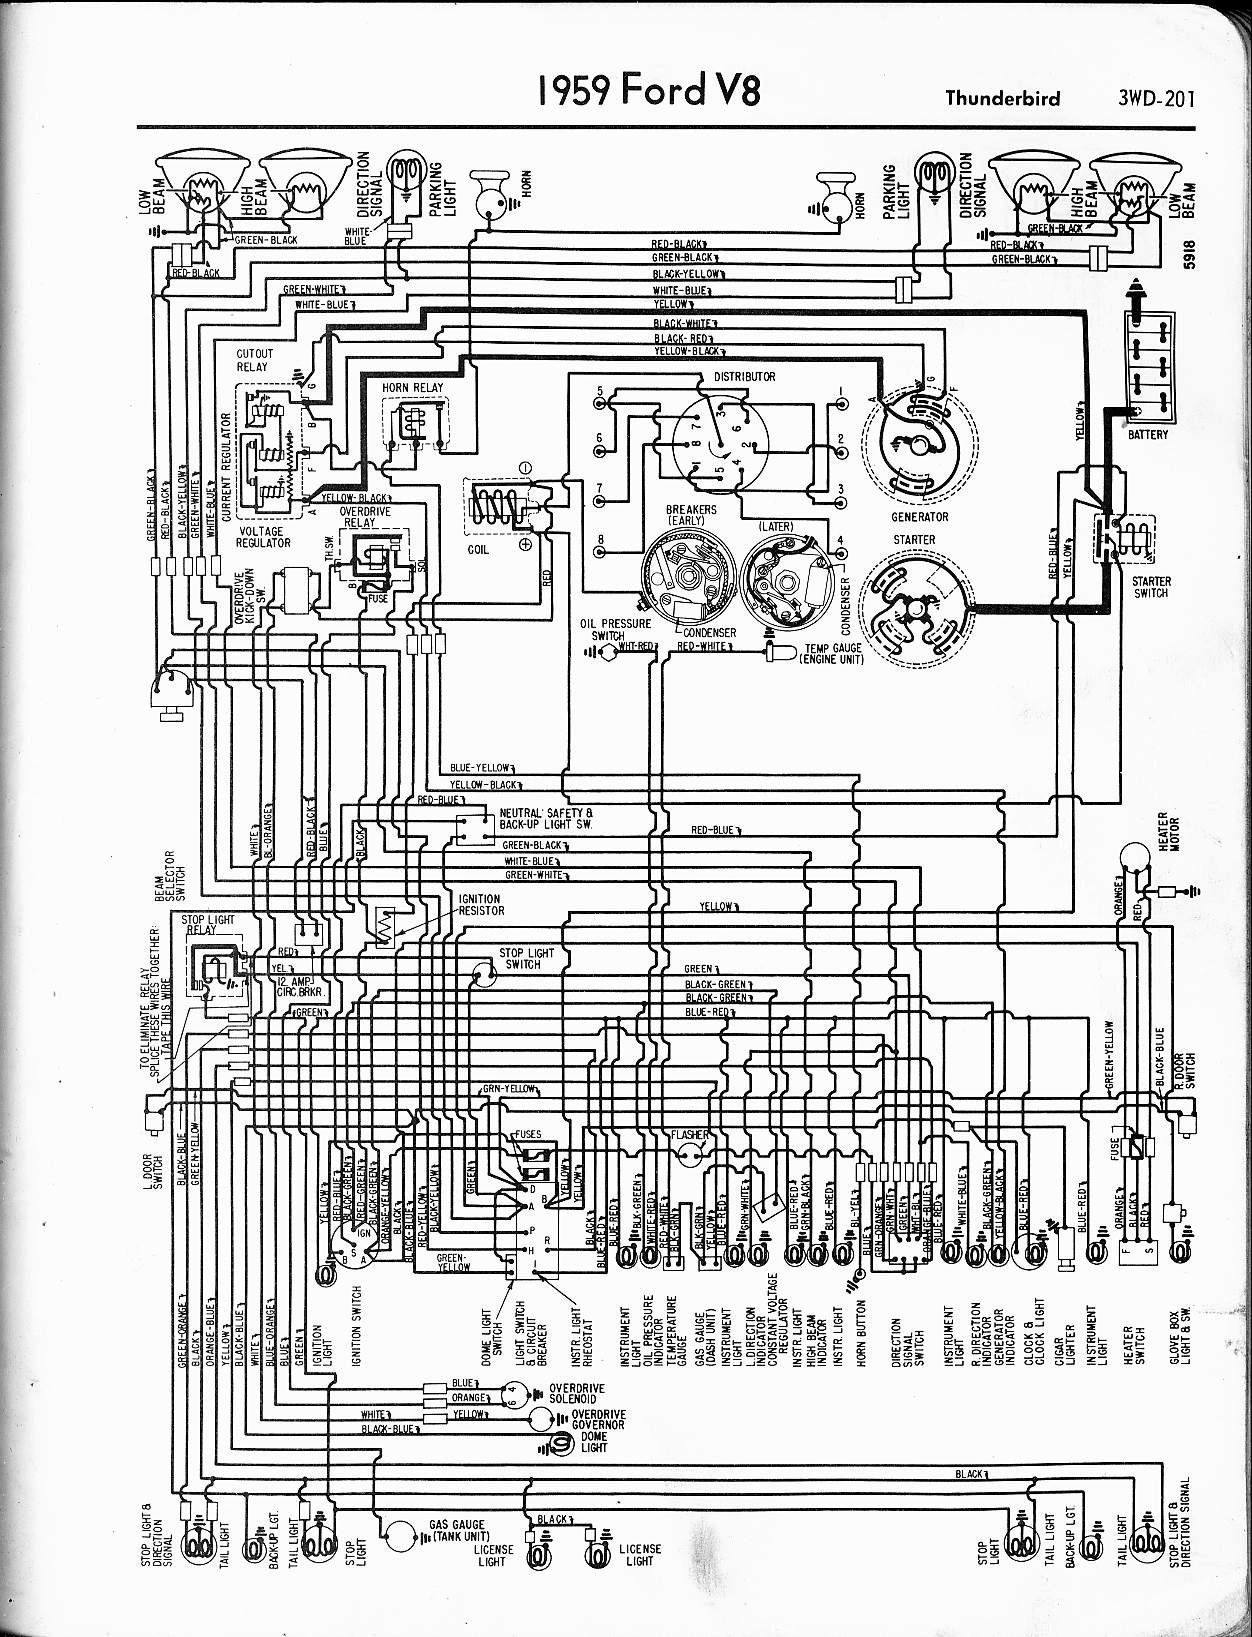 ford truck wiring diagrams free f150 wiring harness further 1970 rh detoxicrecenze com Ford Electrical Wiring Diagrams 1972 Ford Bronco Wiring Diagram